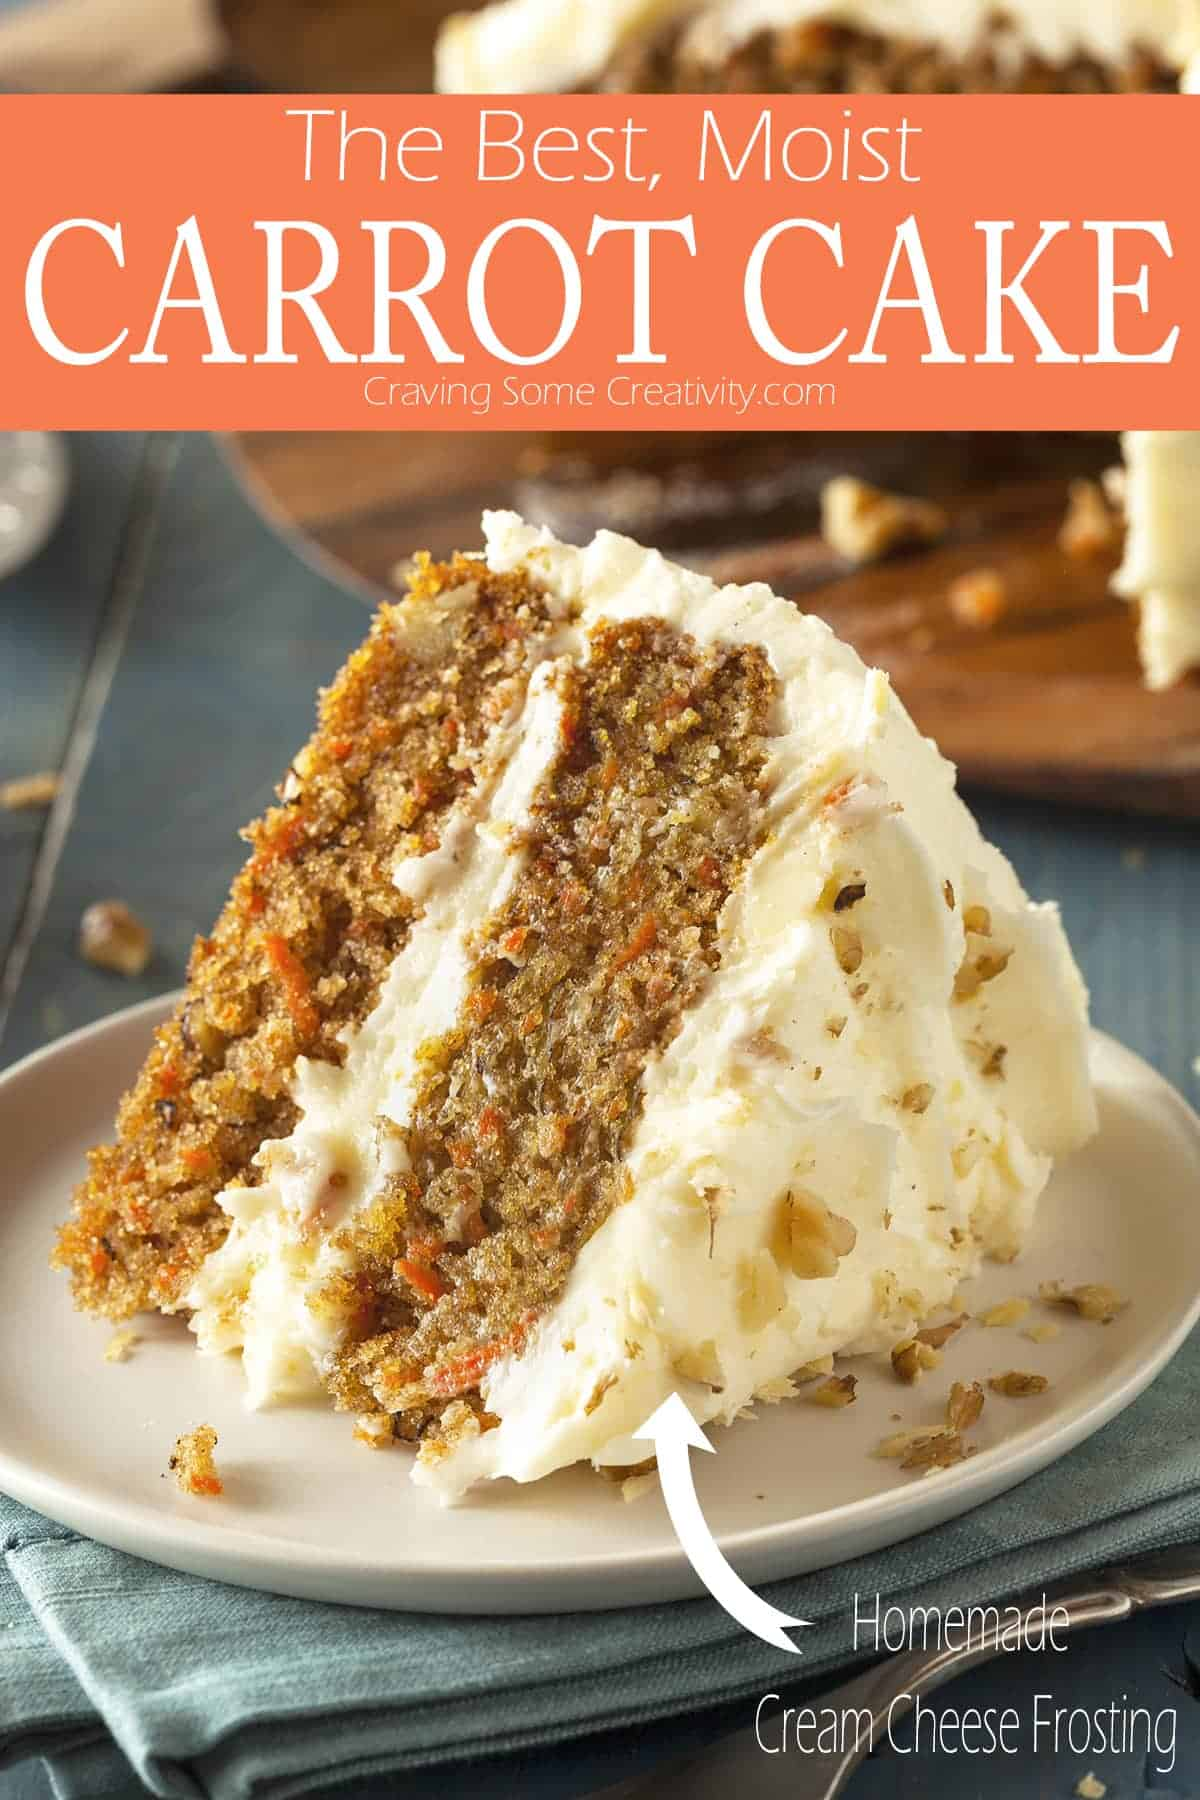 Double layered slice of cream cheese frosted carrot cake on white plate over folded blue towel next to full cake on wooden tray.